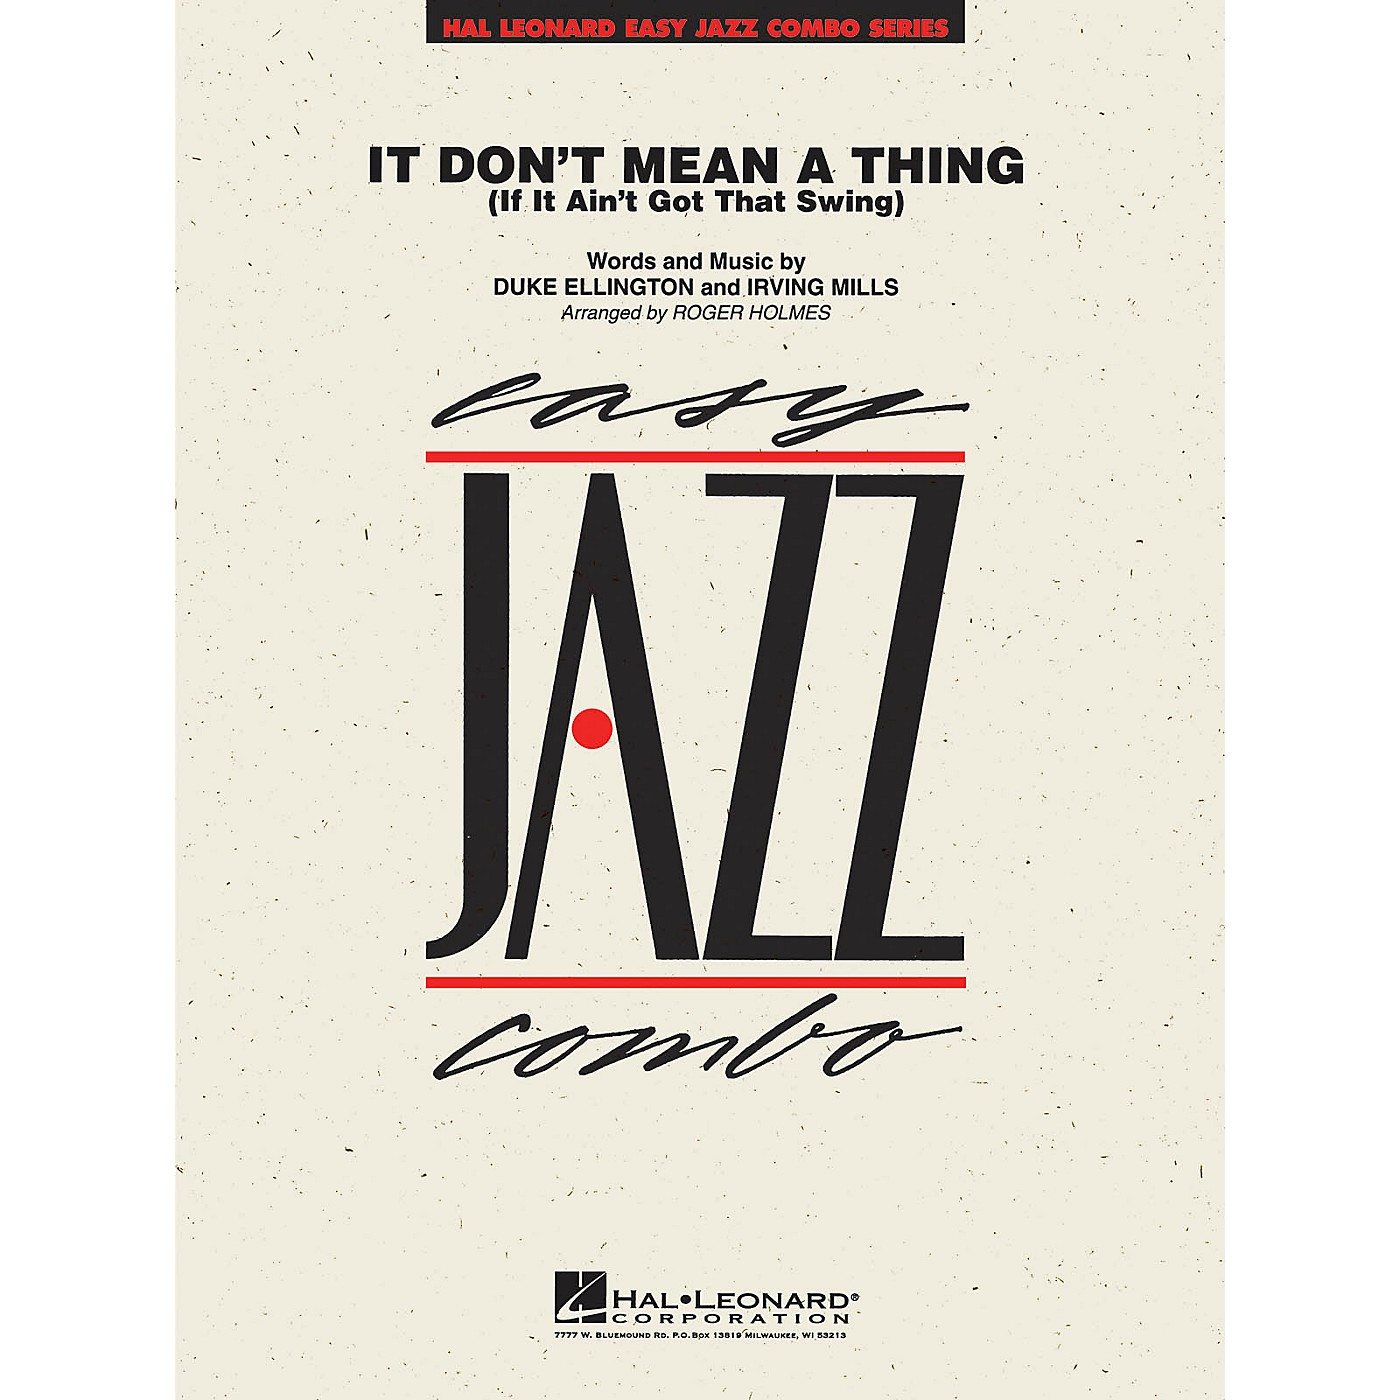 Hal Leonard It Don't Mean a Thing Jazz Band Level 2 Arranged by Roger Holmes thumbnail